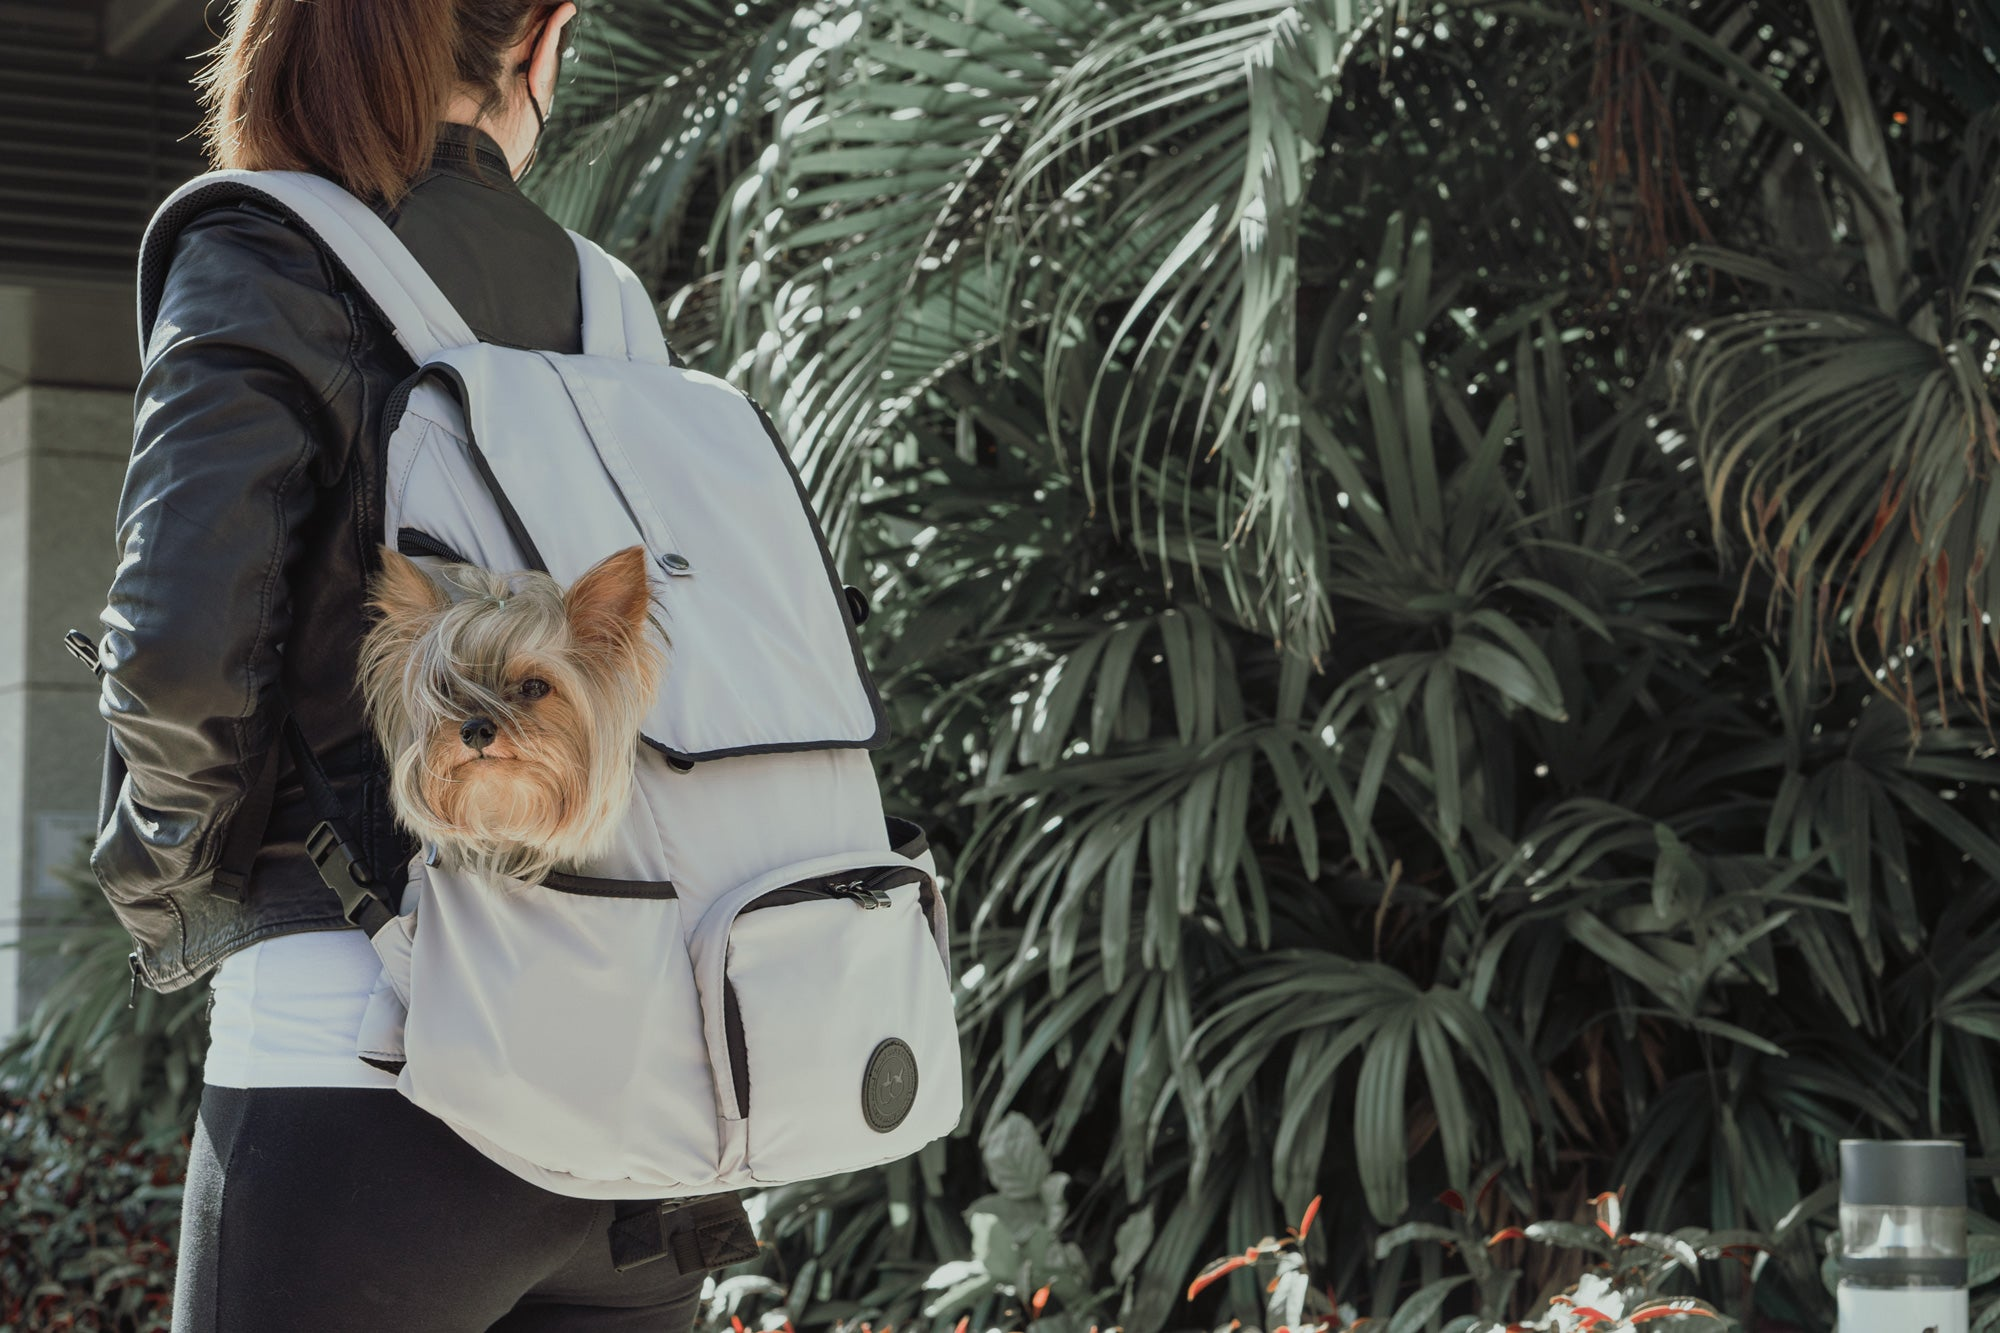 model carrying the backpack dog carrier with a small dog in it